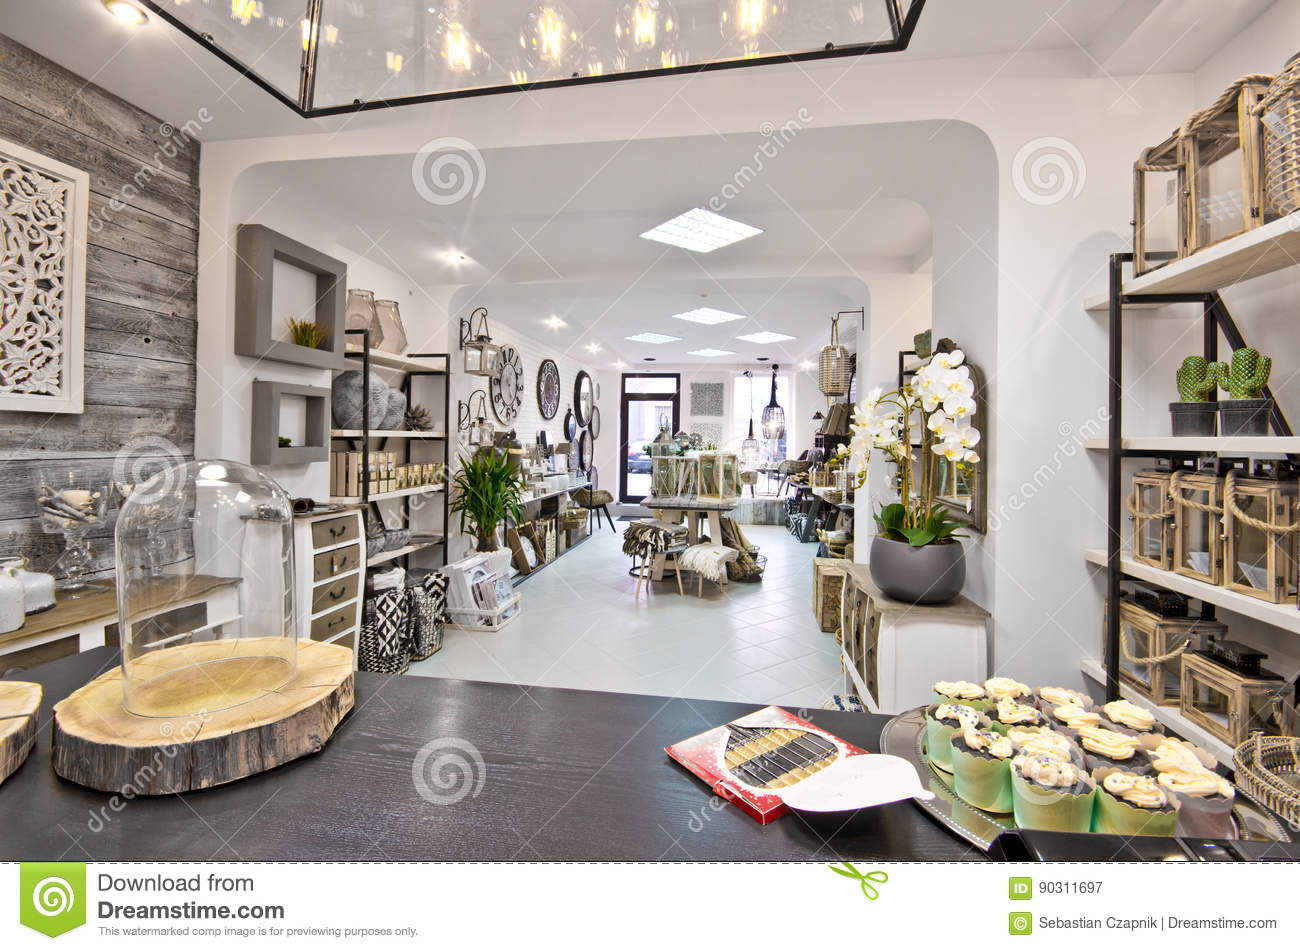 Home Decorations Shop Interior Stock Image Image Of Decoration Interior 90311697